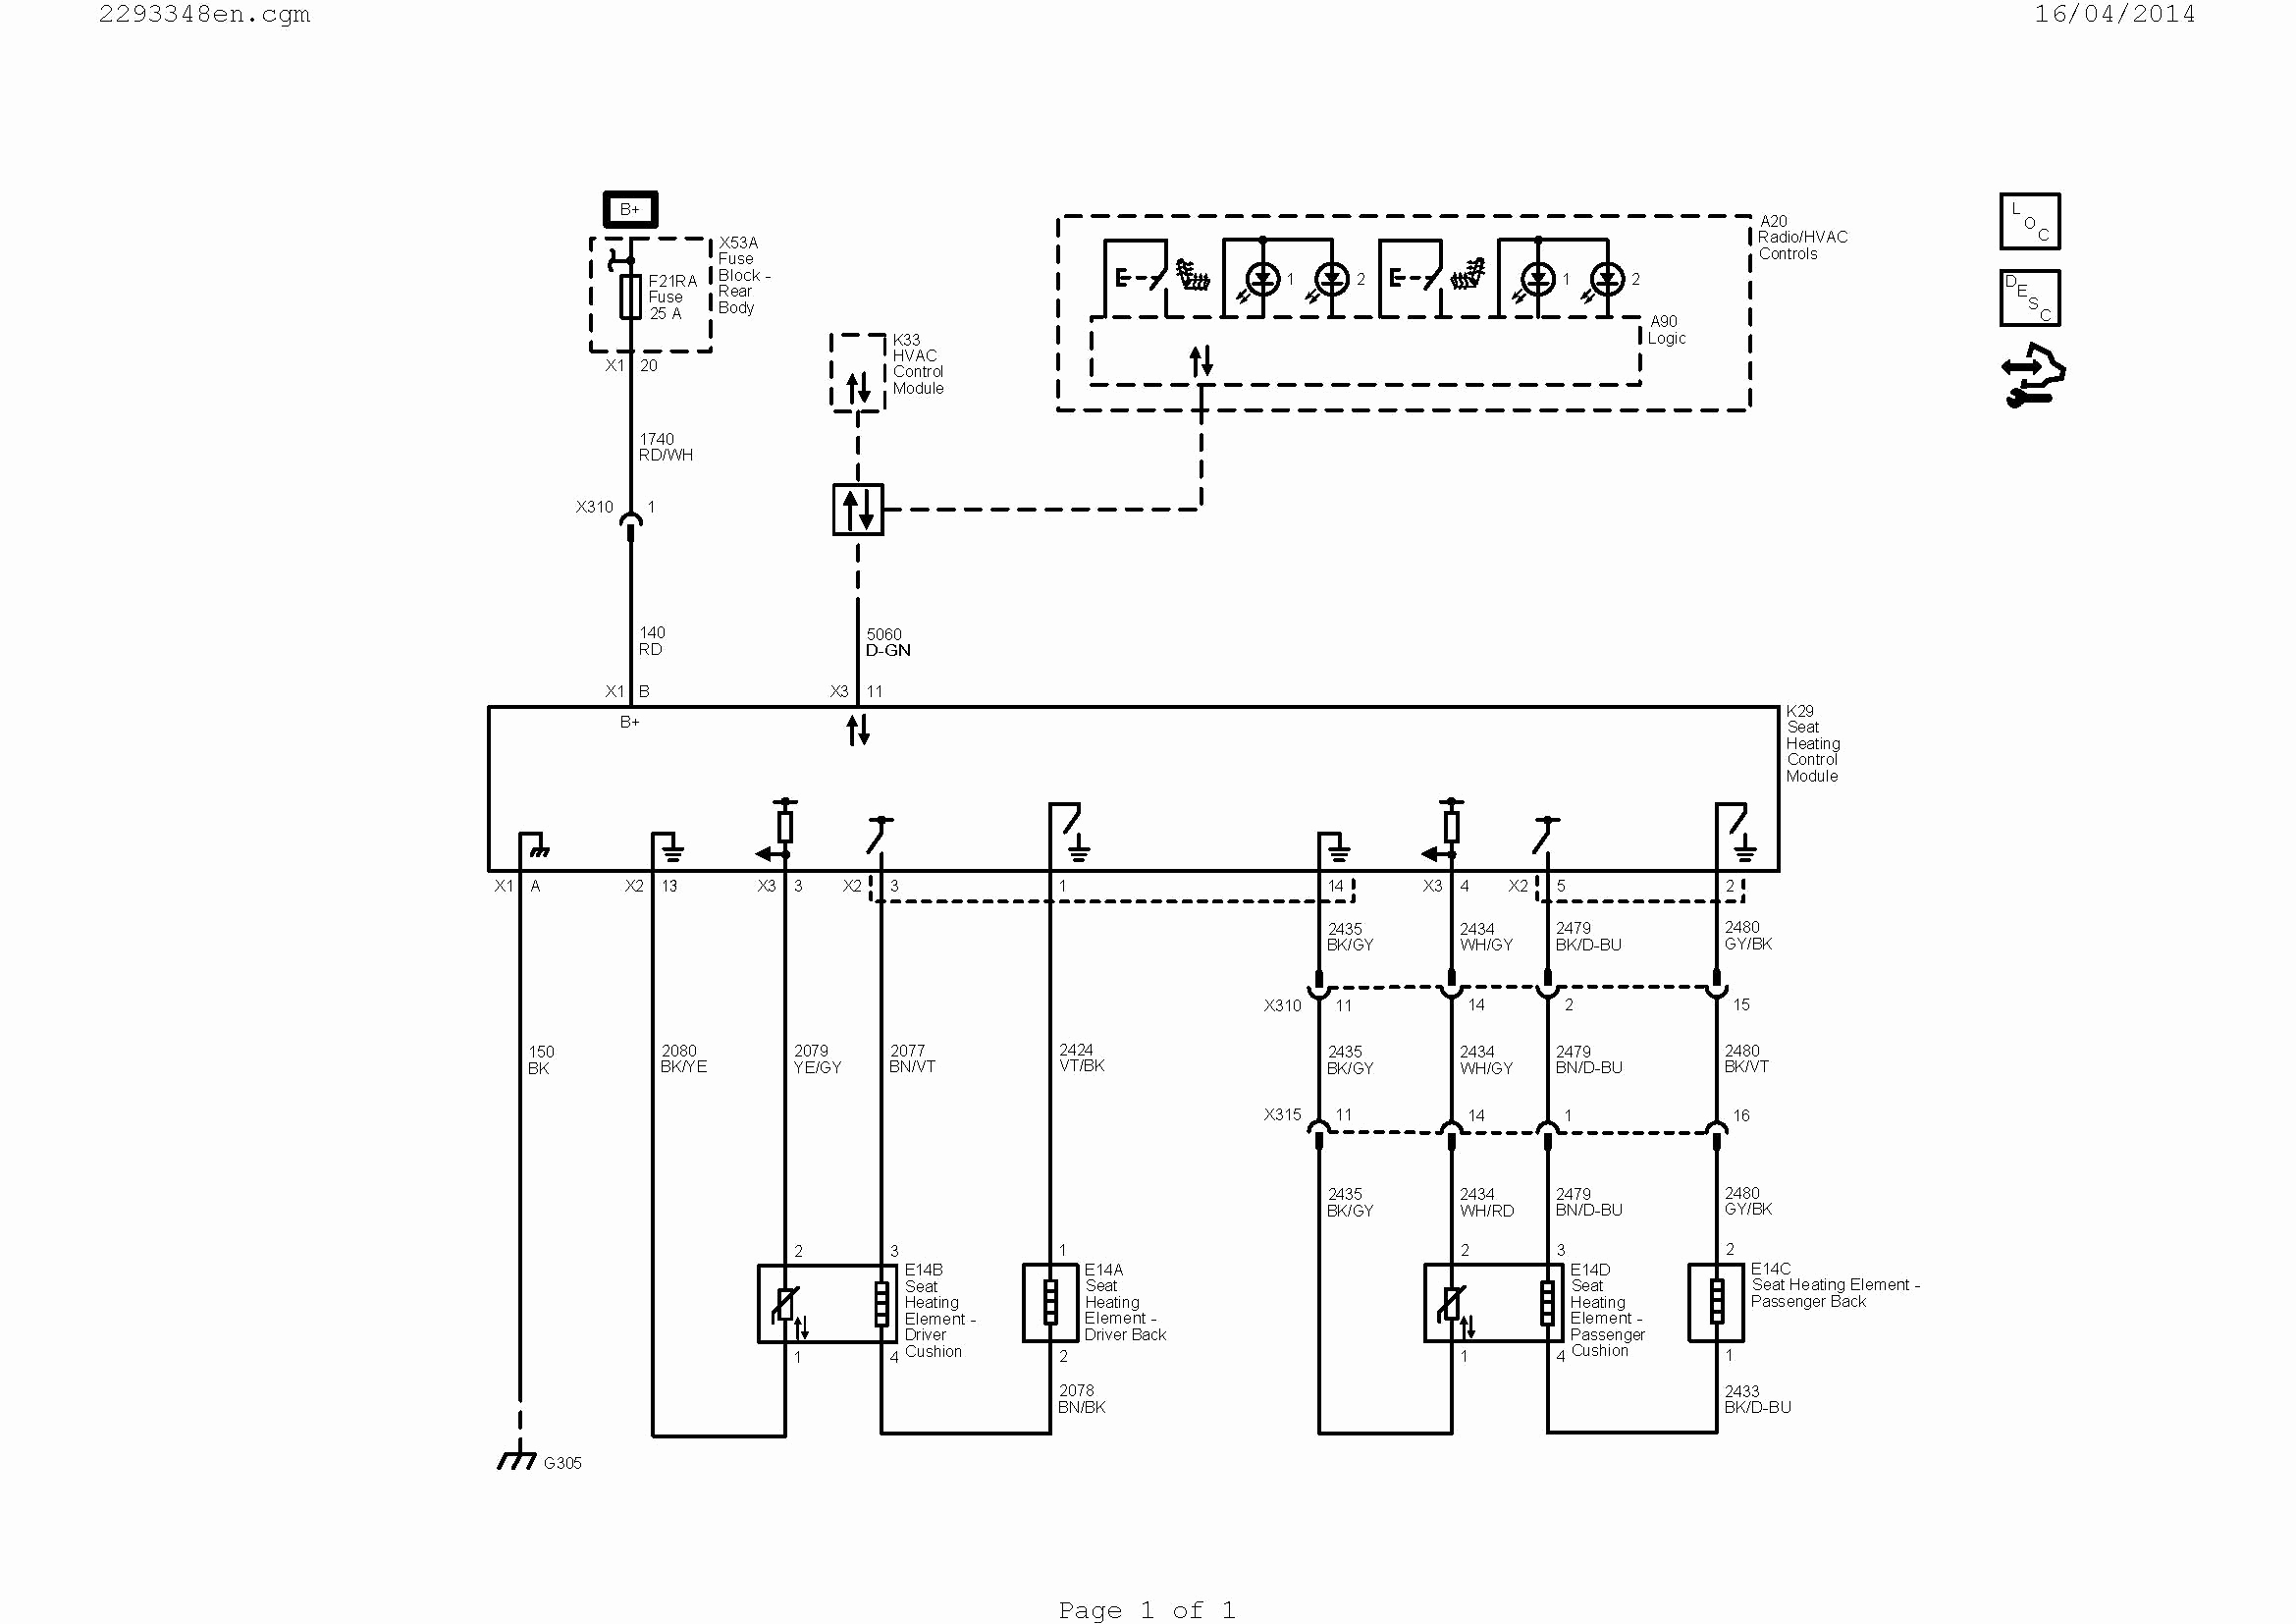 Honeywell Rth9580Wf Wiring Diagram Luxury Honeywell Wifi Smart - Honeywell Rth9580Wf Wiring Diagram